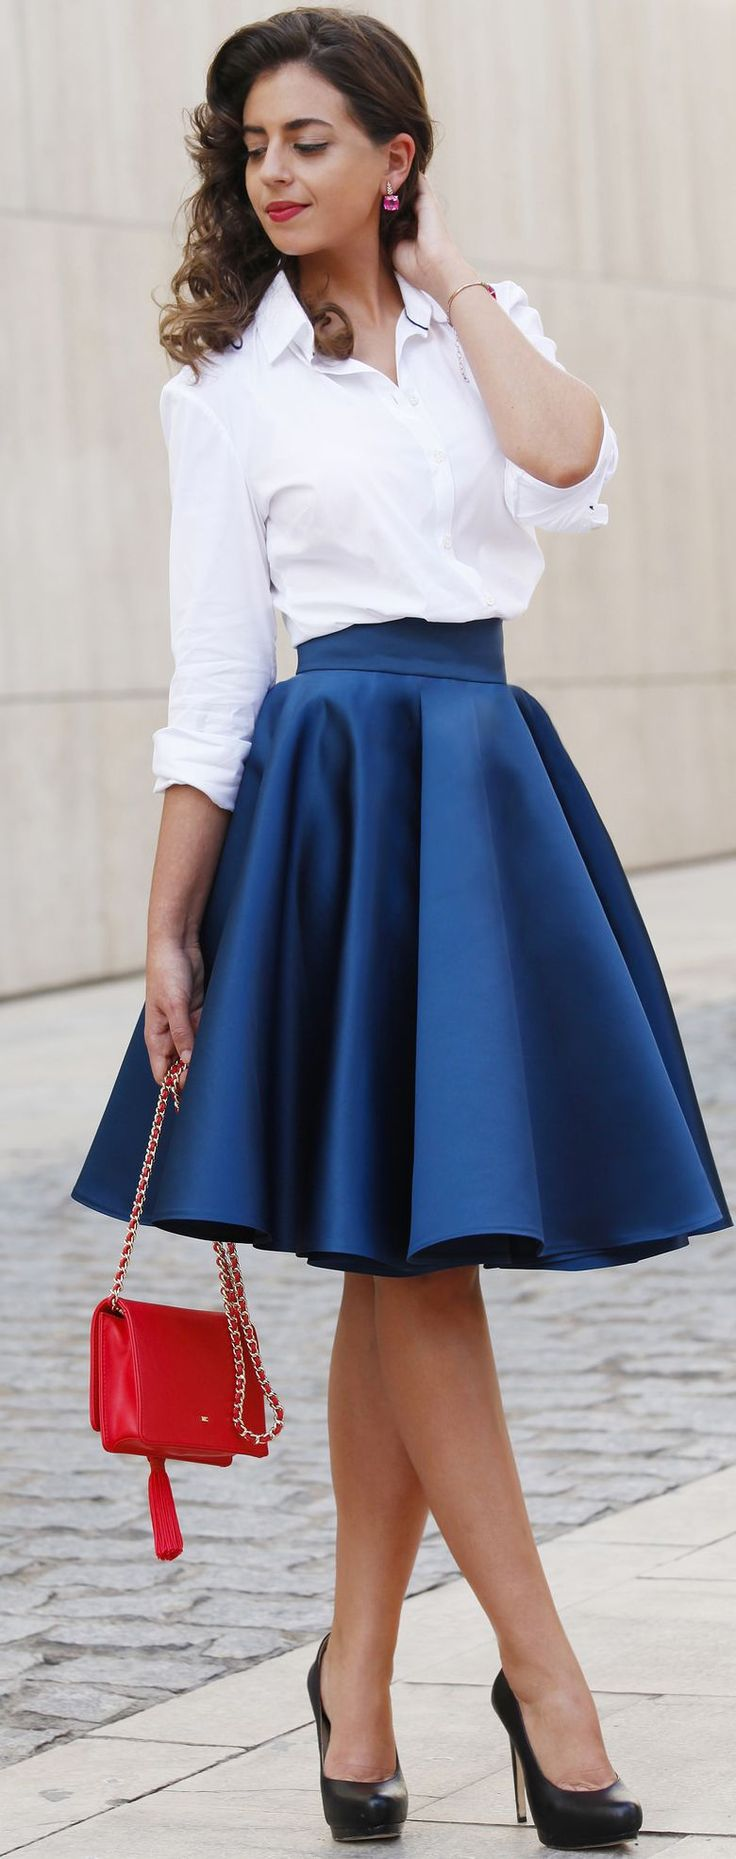 black heels white buttonup blue askirt fall street style